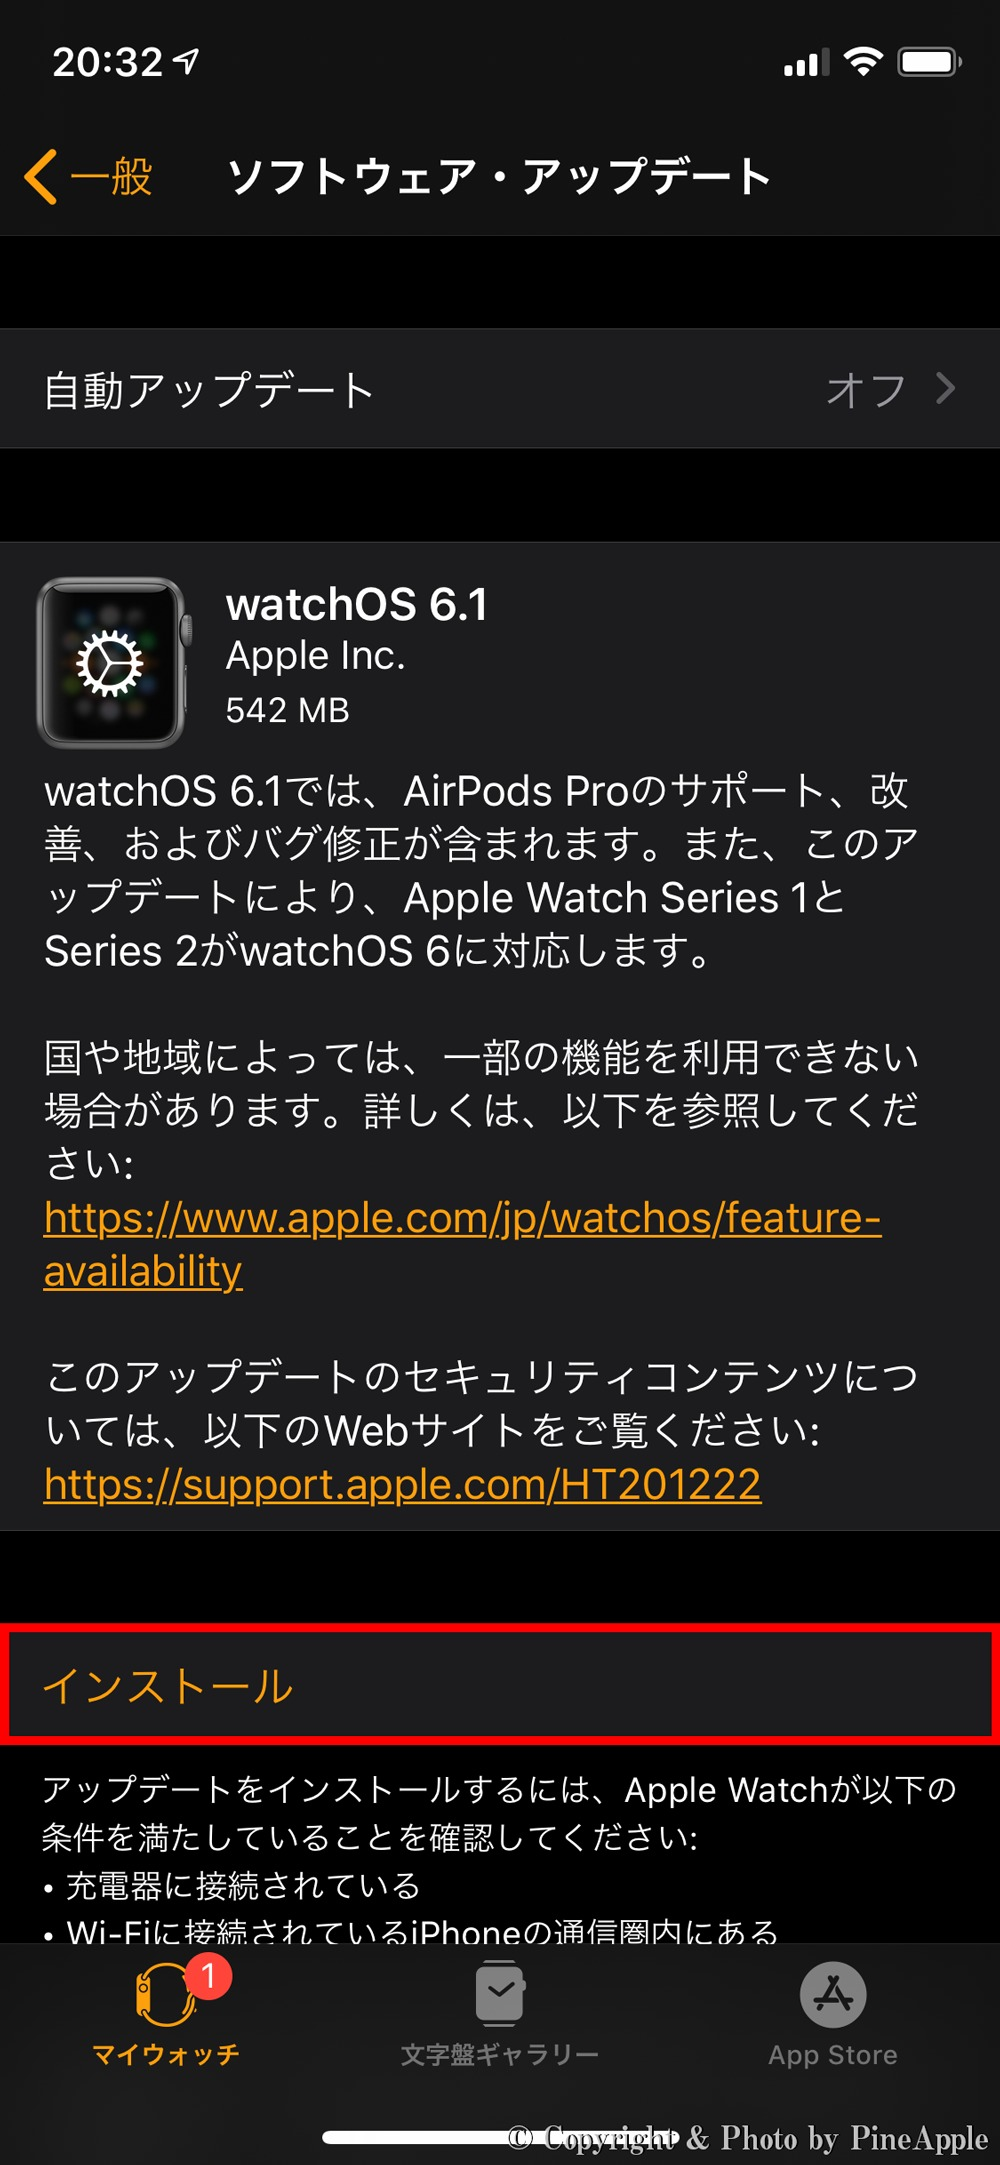 watchOS 6.1:Watch>一般>ソフトウェアアップデート